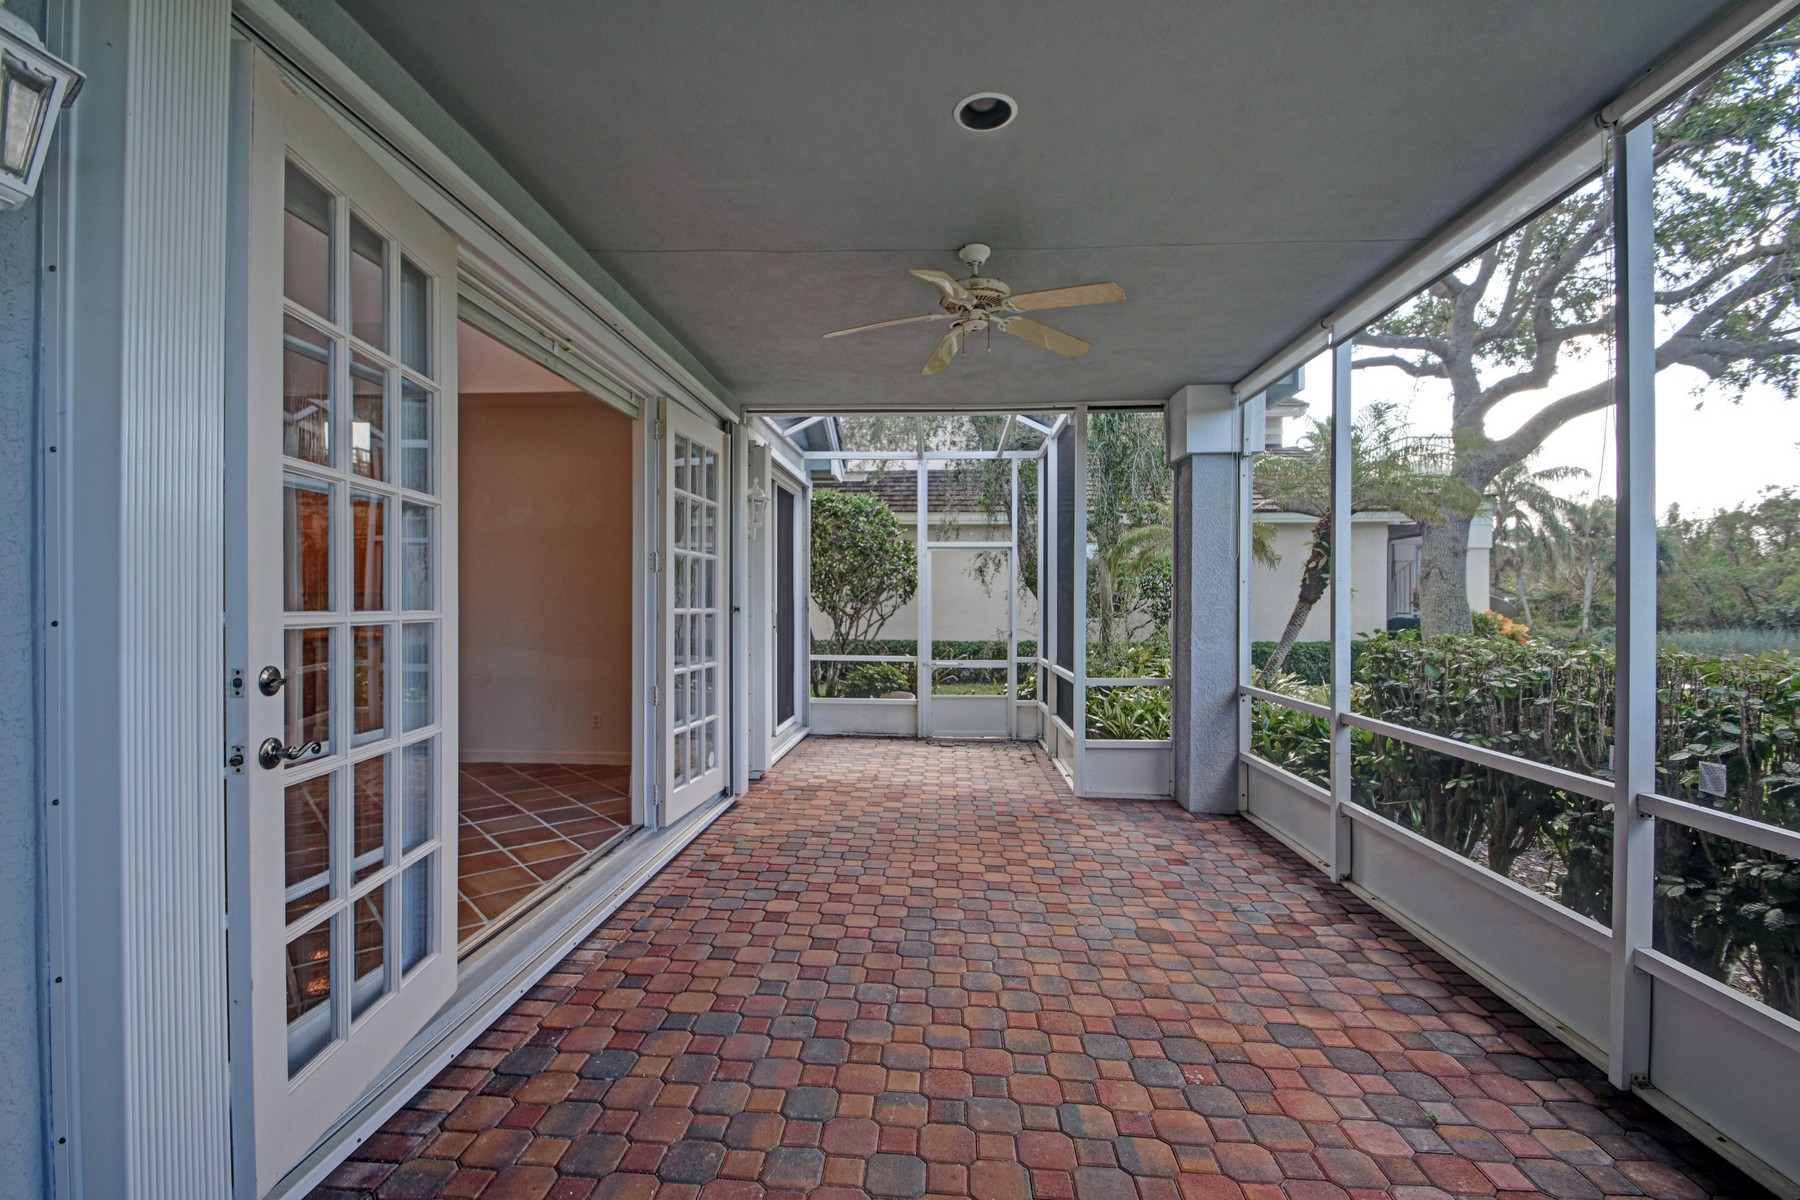 Additional photo for property listing at Beautiful lakefront home with views of Wildlife Preserve 401 N Peppertree Drive Indian River Shores, Florida 32963 United States